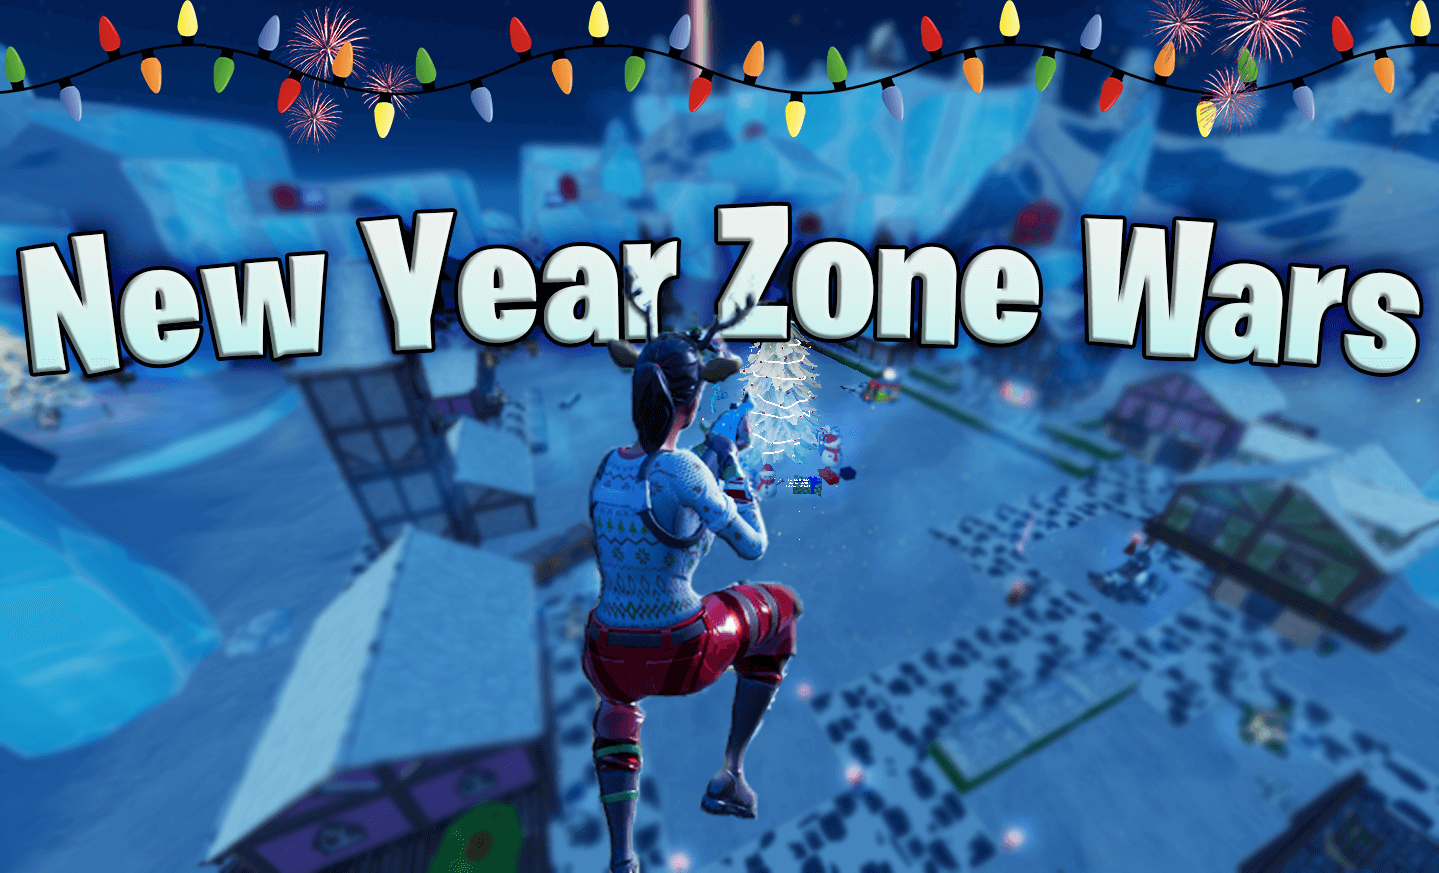 NEW YEARS ZONE WAR